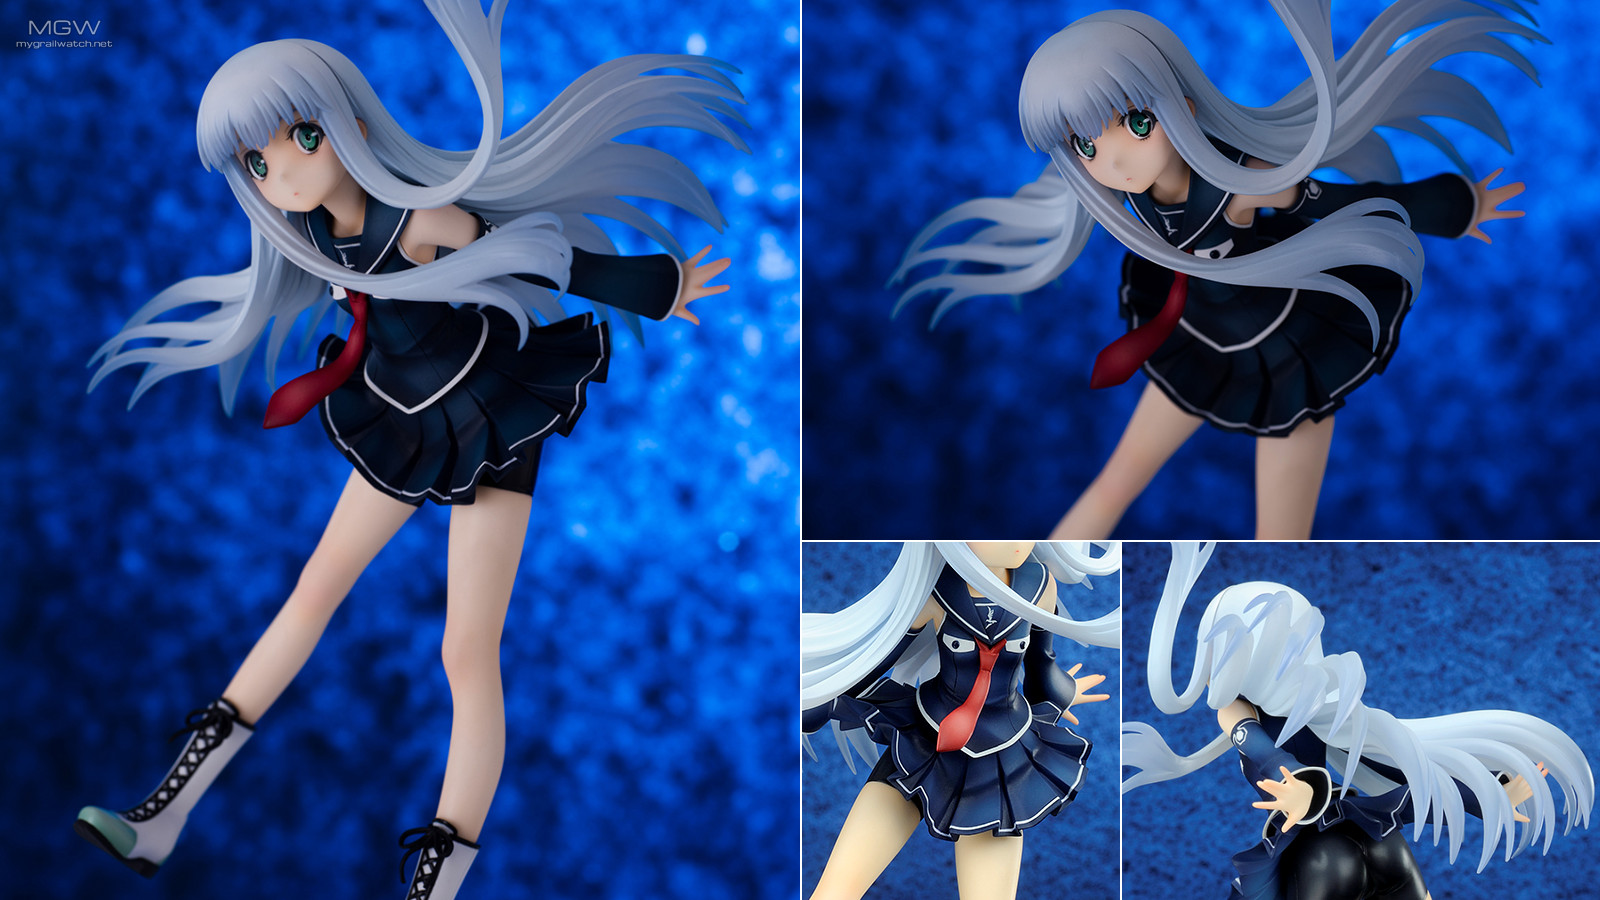 Mental Model Iona by quesQ from Arpeggio of Blue Steel